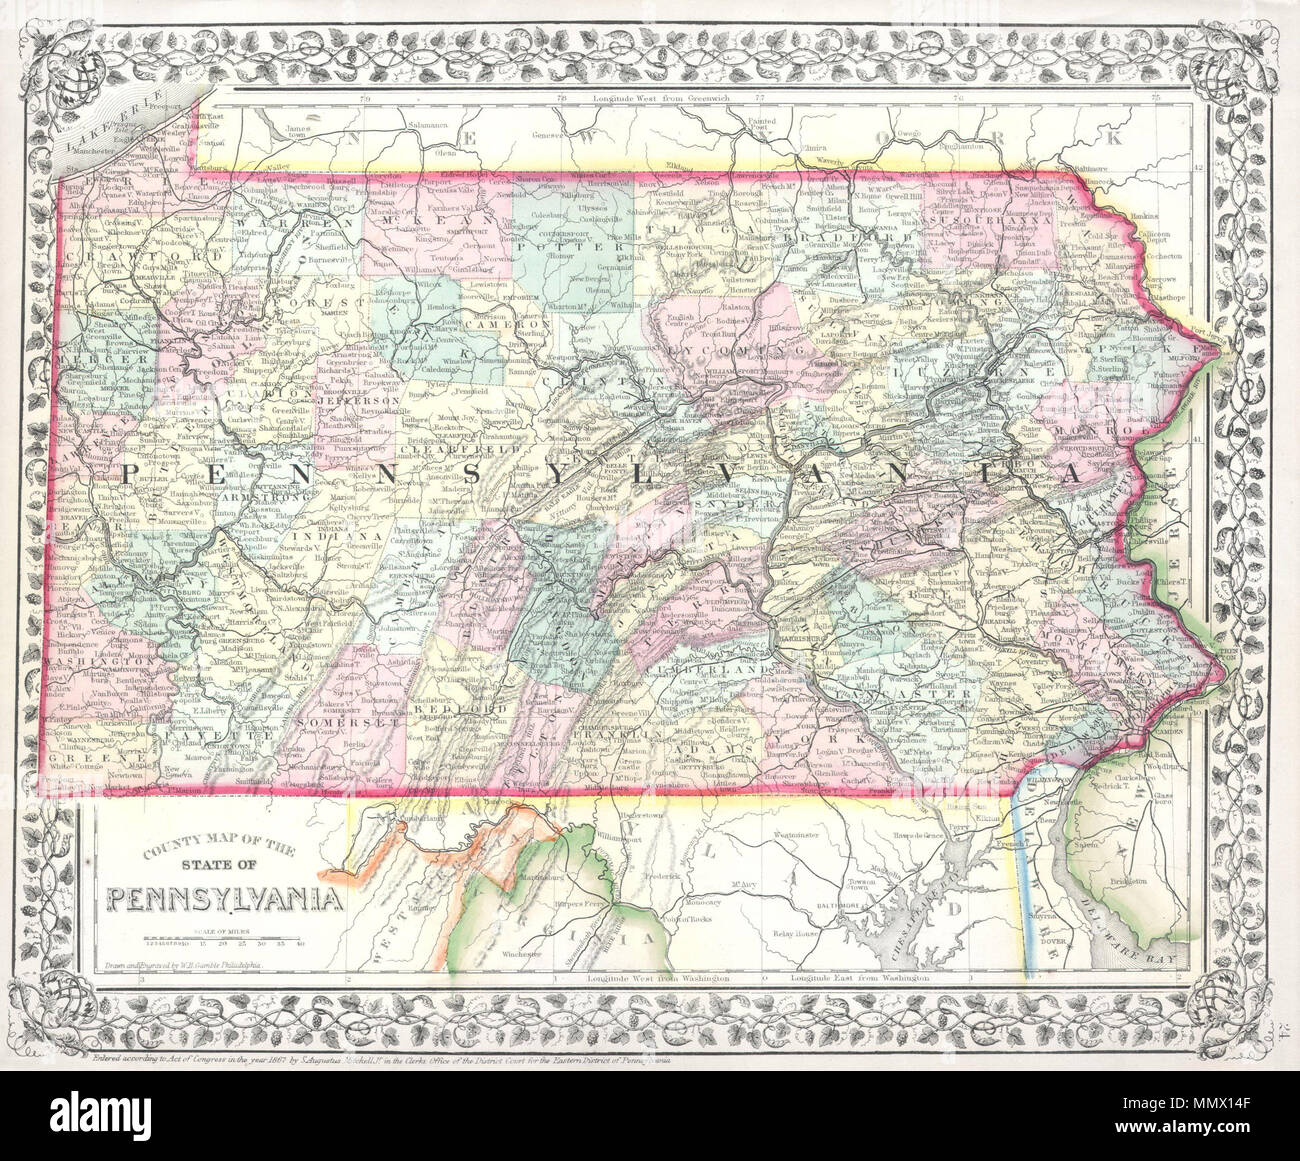 Pa State Map With Counties And Cities.English This Is A Hand Colored Map Of The State Of Pennsylvania By